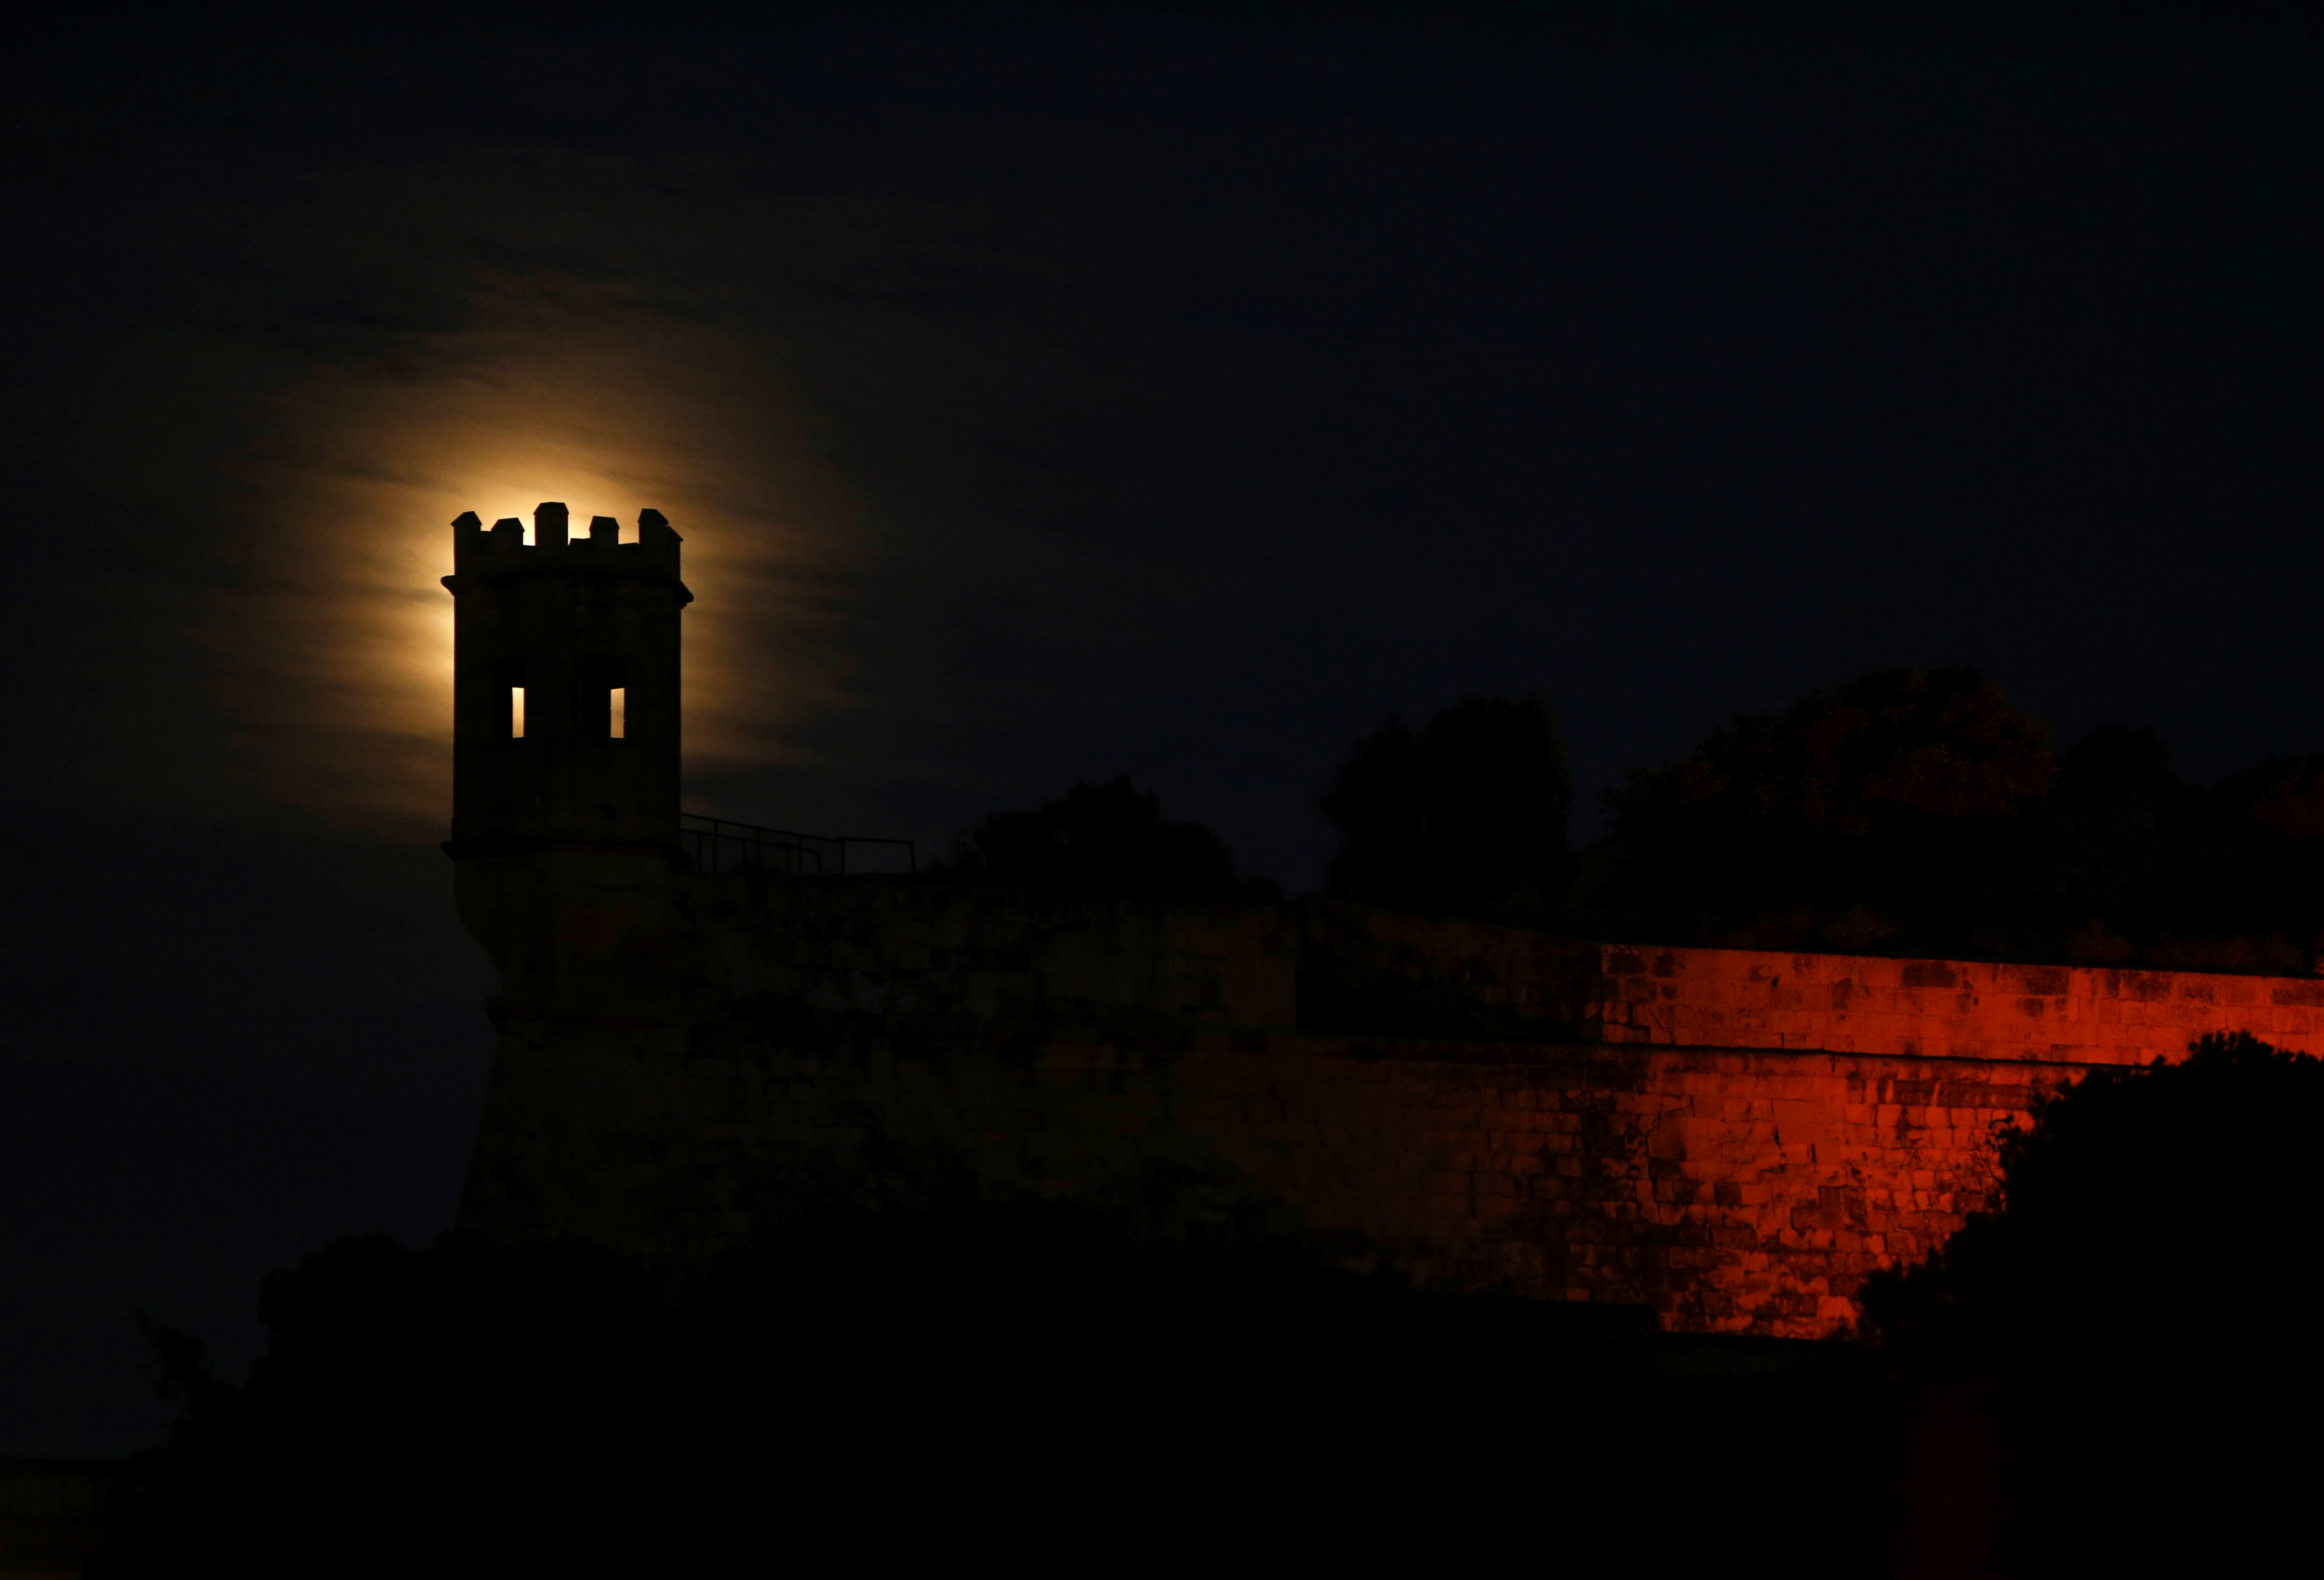 A 'supermoon' full moon rises behind the guard tower on the 17th century San Salvatore Bastion in Pieta